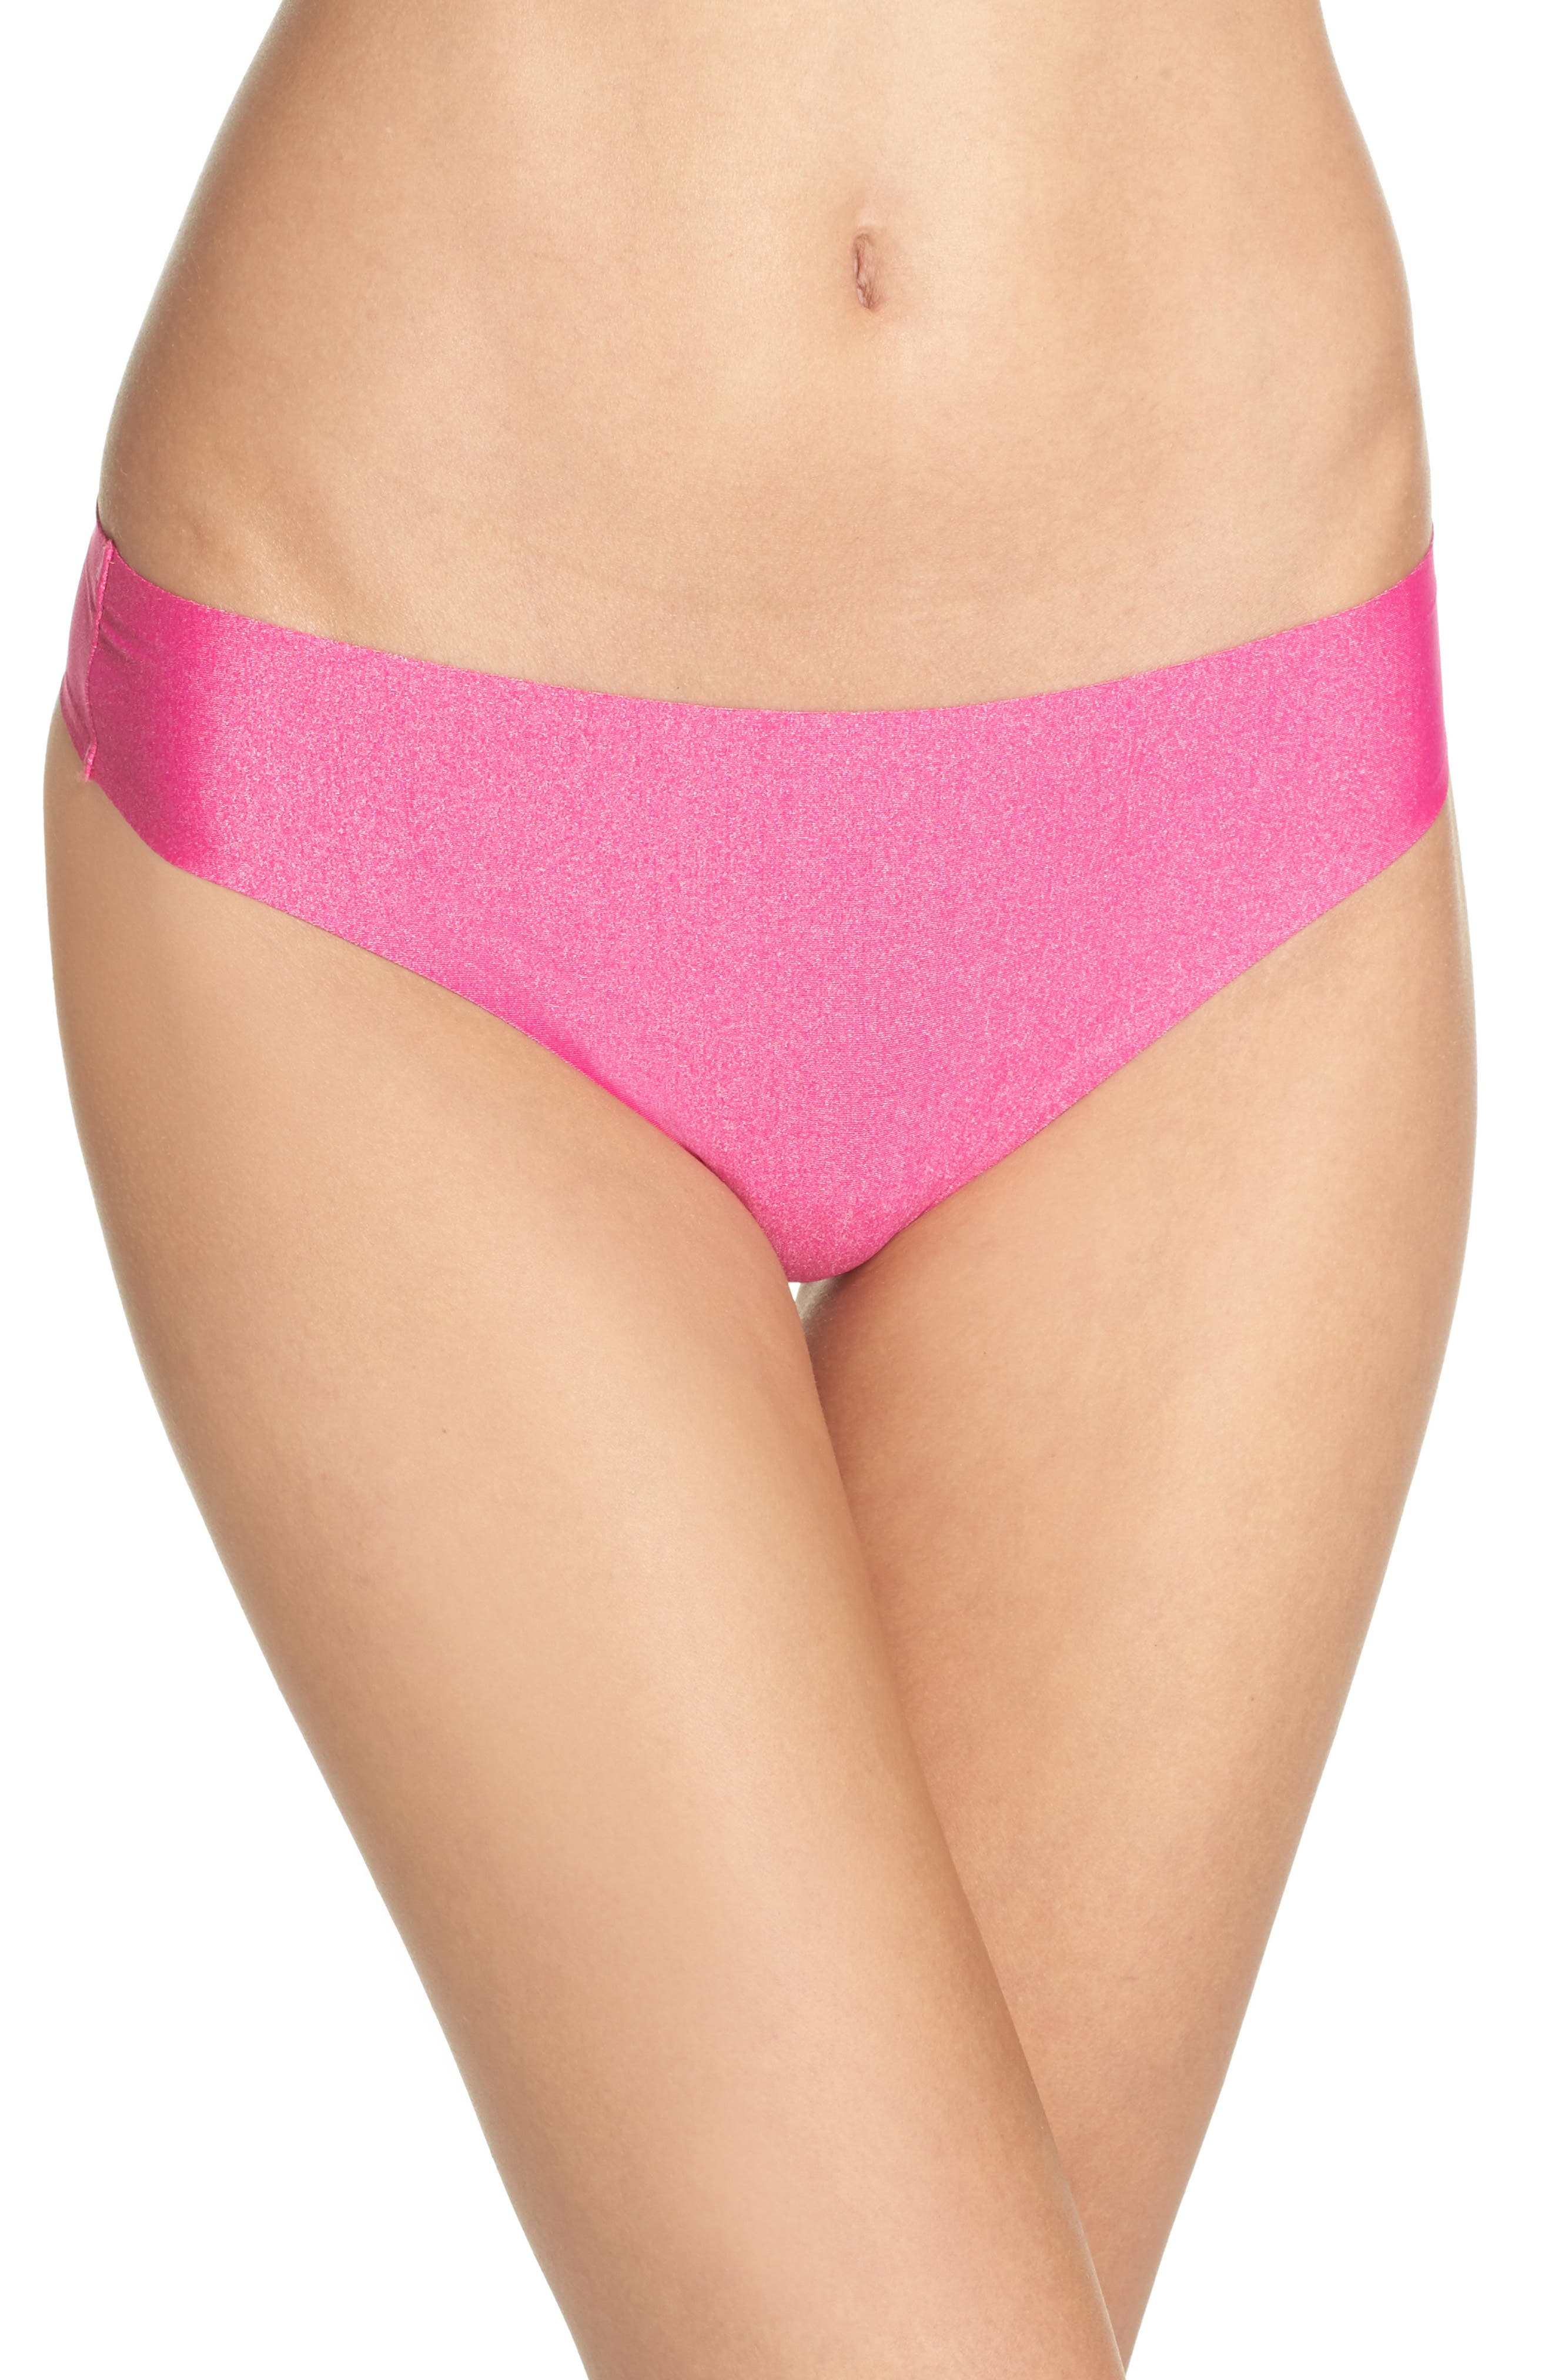 Alternate Image 1 Selected - Honeydew Intimates Skinz Thong (3 for $33)